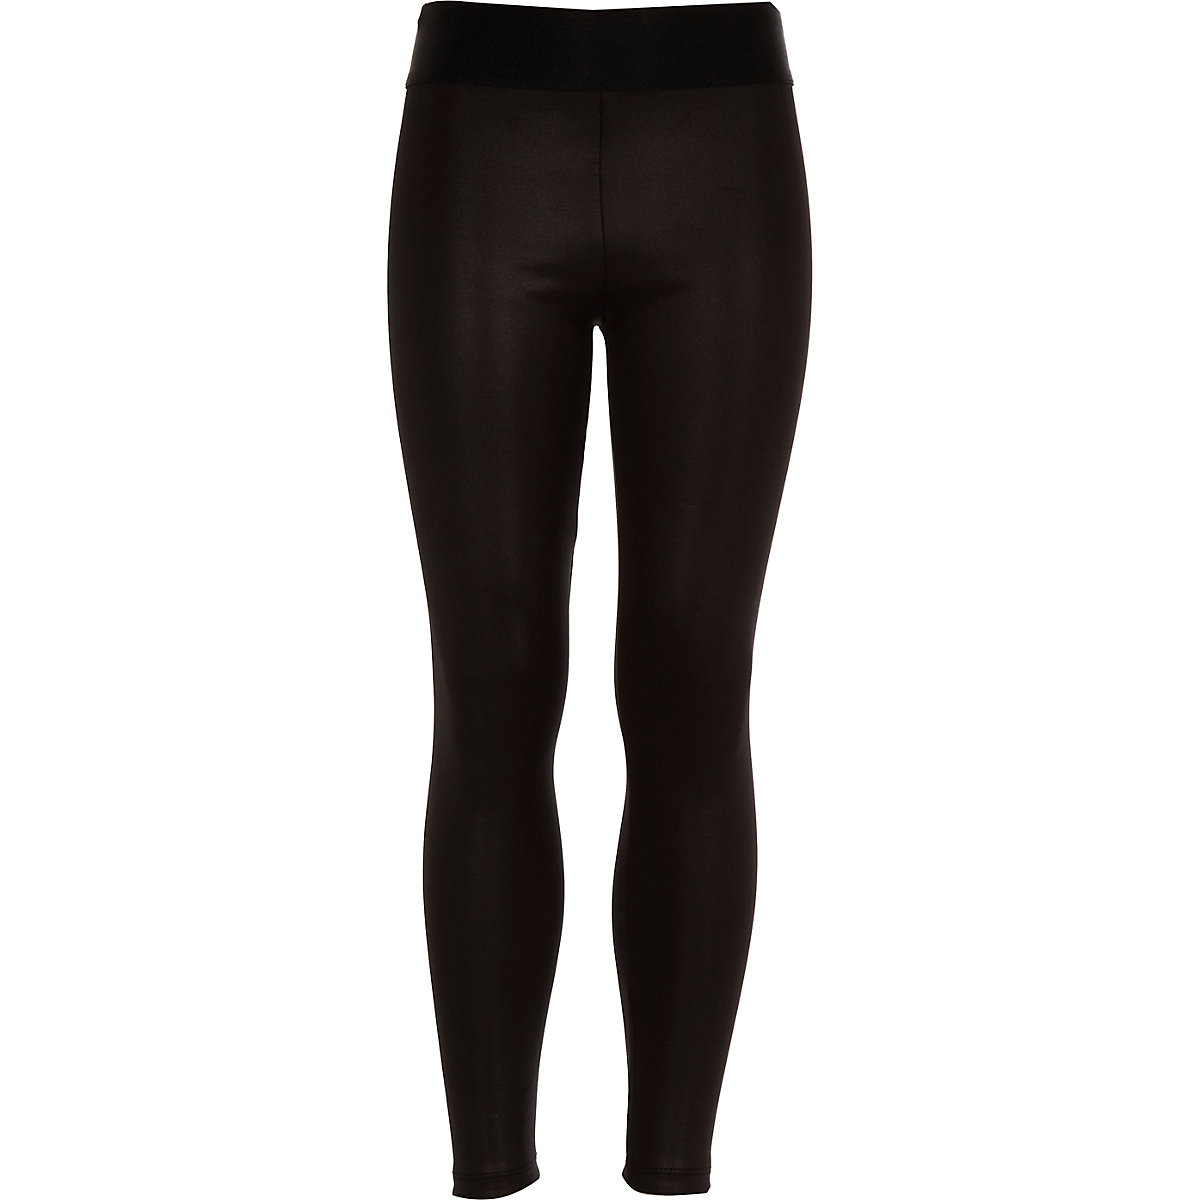 Girls black coated wet look leggings